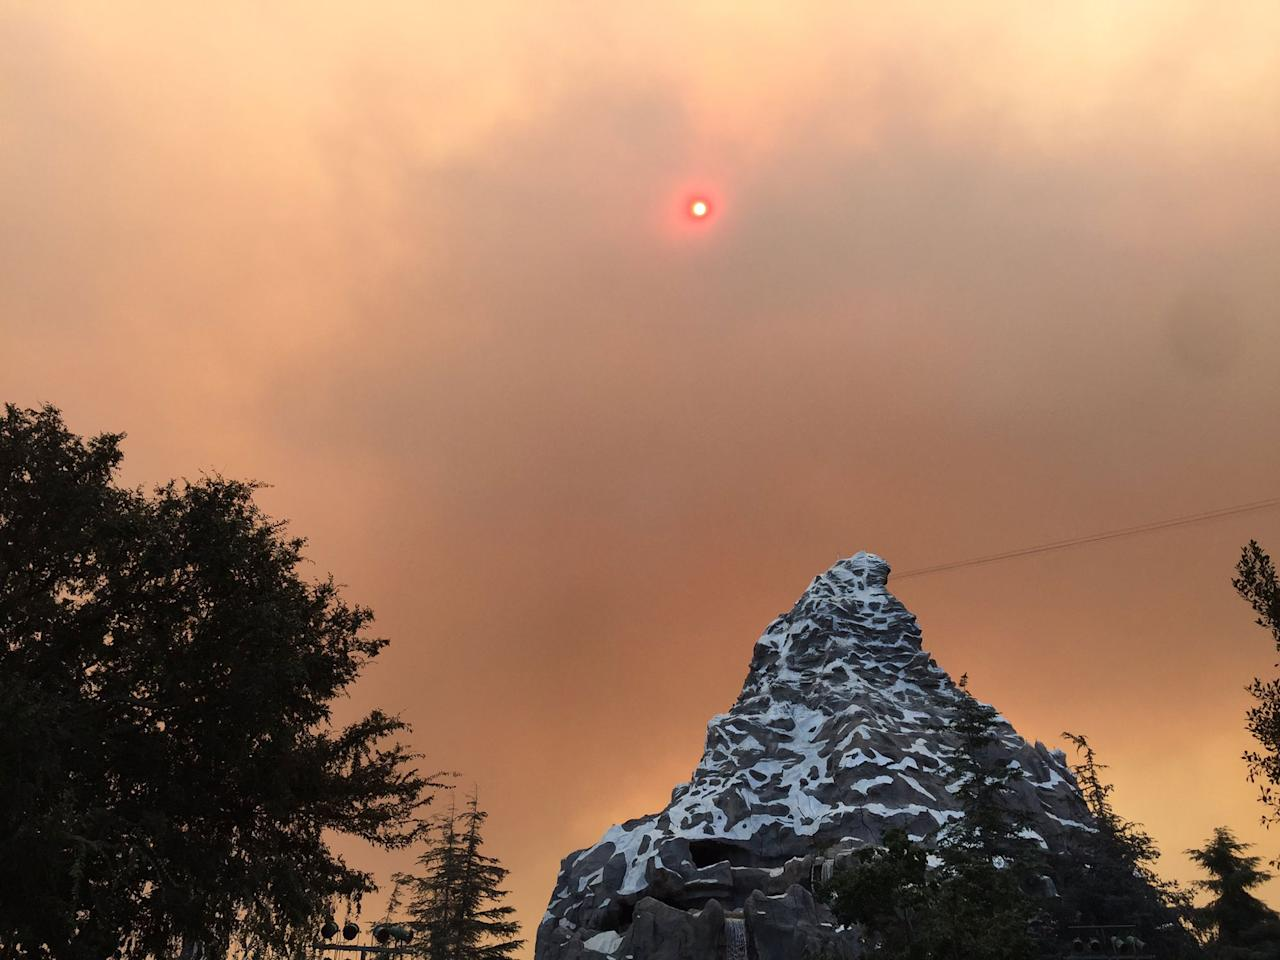 <p>Disneyland and Disney's California Adventure remained open as the skies turned an ominous orange over the Matterhorn ride, seen here. </p>